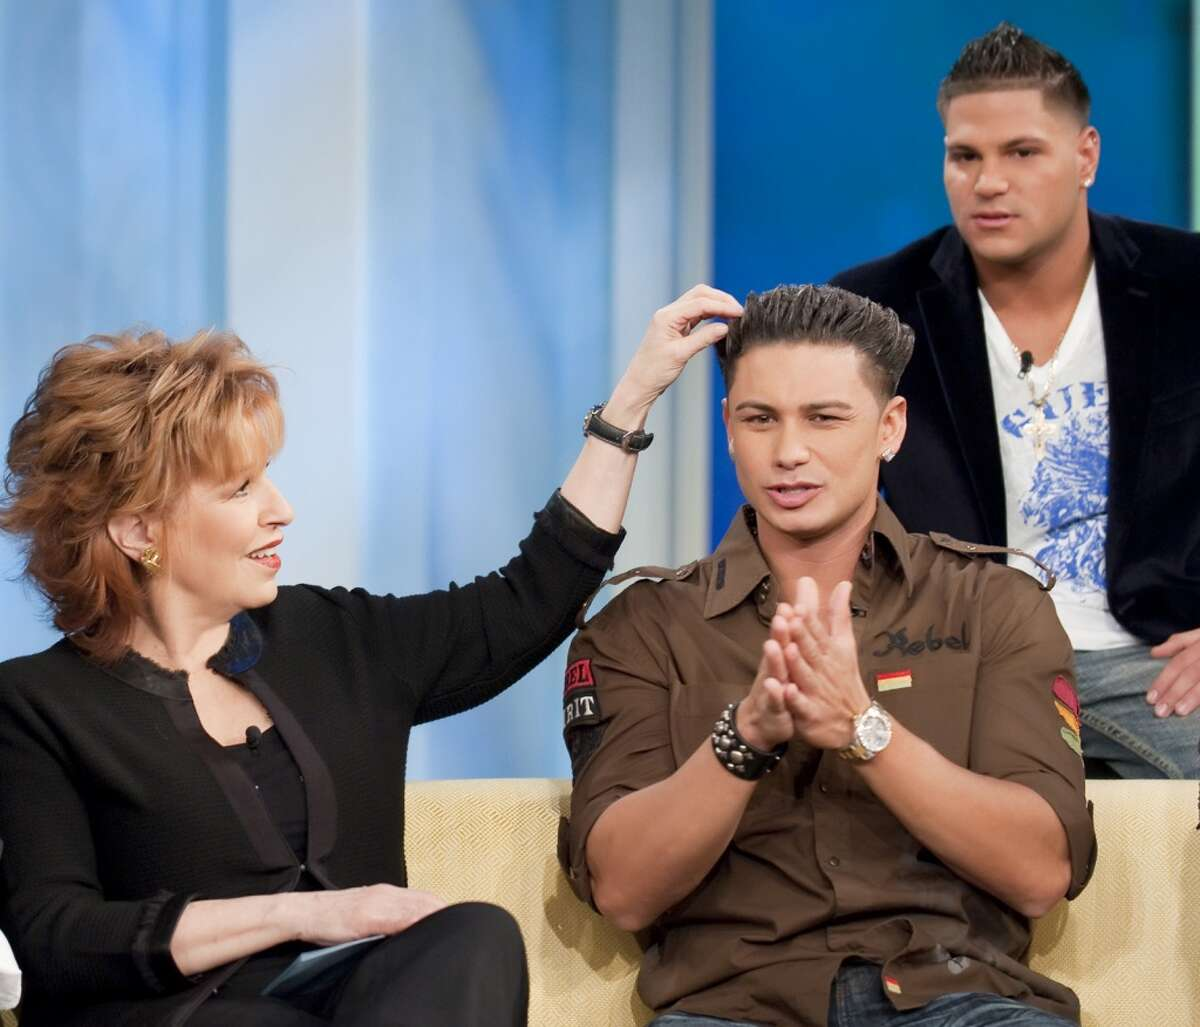 """THE VIEW - Cast members from MTV's The Jersey Shore"""" were guests on """"THE VIEW,"""" Tuesday, Feb. 23, 2010 (11:00 a.m. - 12:00 noon, ET) airing on the ABC Television Network. The co-host were given their own """"Jersey Shore """" names by Mike """"The Situation"""" Sorrentino. They are: Whoopi is """"The Administration"""" (because she sits at the head of the table,) Joy is """"The Assumption"""" (because he heard some of her on-ar comments backstage,) Elisabeth is """"The Attraction"""" and Sherri is """"The Duplication"""" (Because she has snooki's hair-do.) VW10 (Photo by Steve Fenn/ABC via Getty Images) JOY BEHAR,PAULY """"DJ PAULY D"""" DEL VECCHIO,RONNIE MAGRO"""